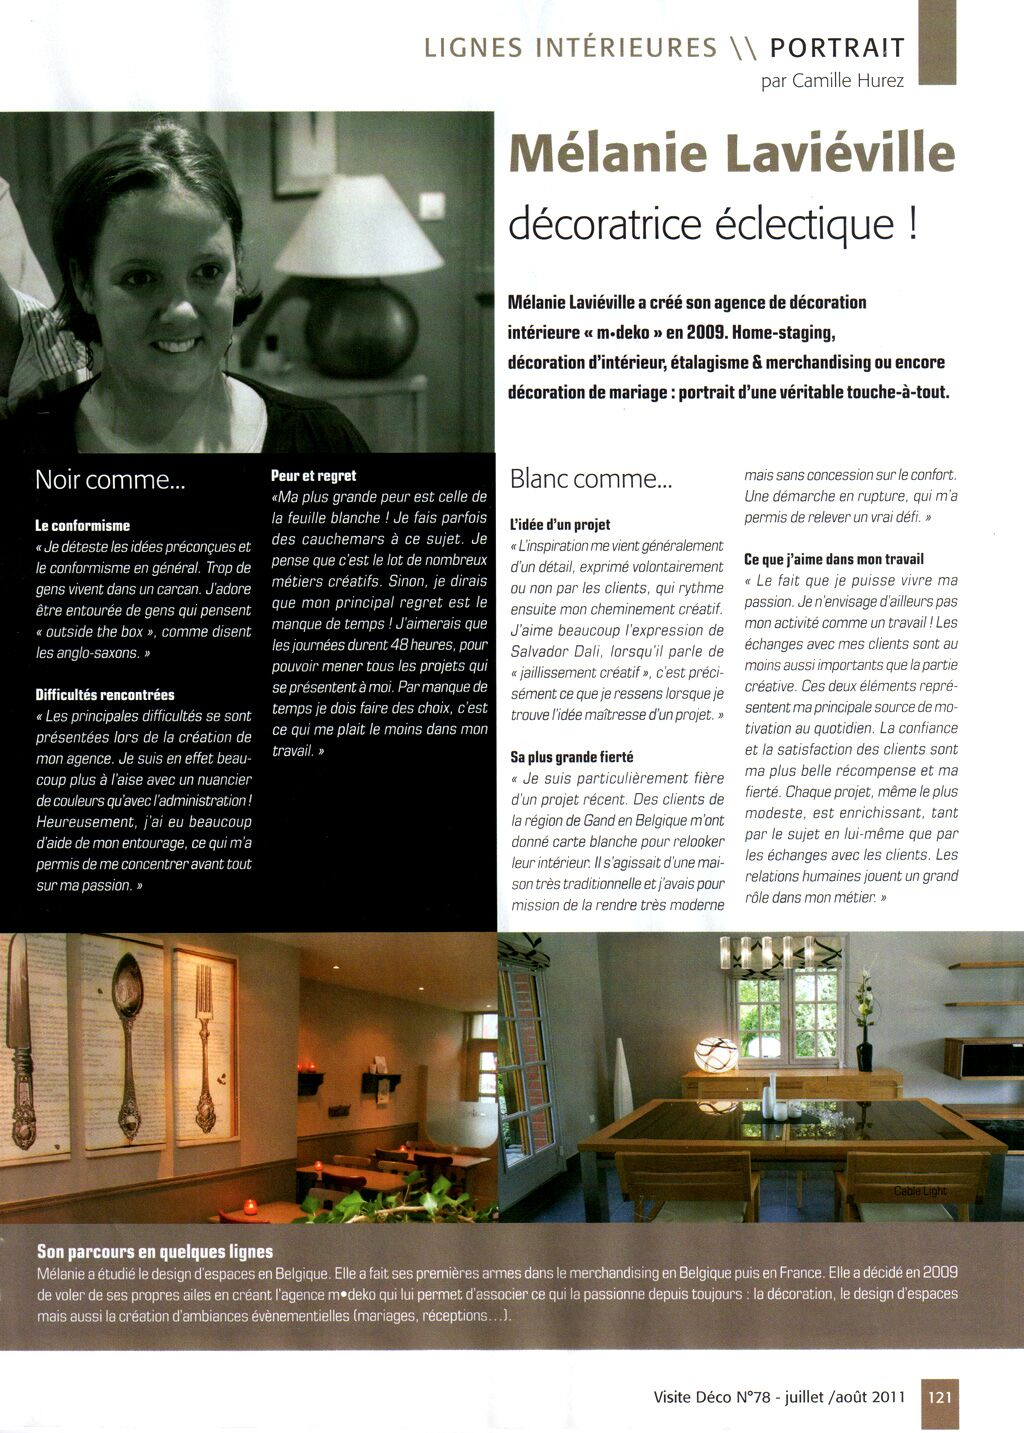 magazine visite d co de juin 2011 m lanie lavi ville d coratrice clectique blog d co. Black Bedroom Furniture Sets. Home Design Ideas